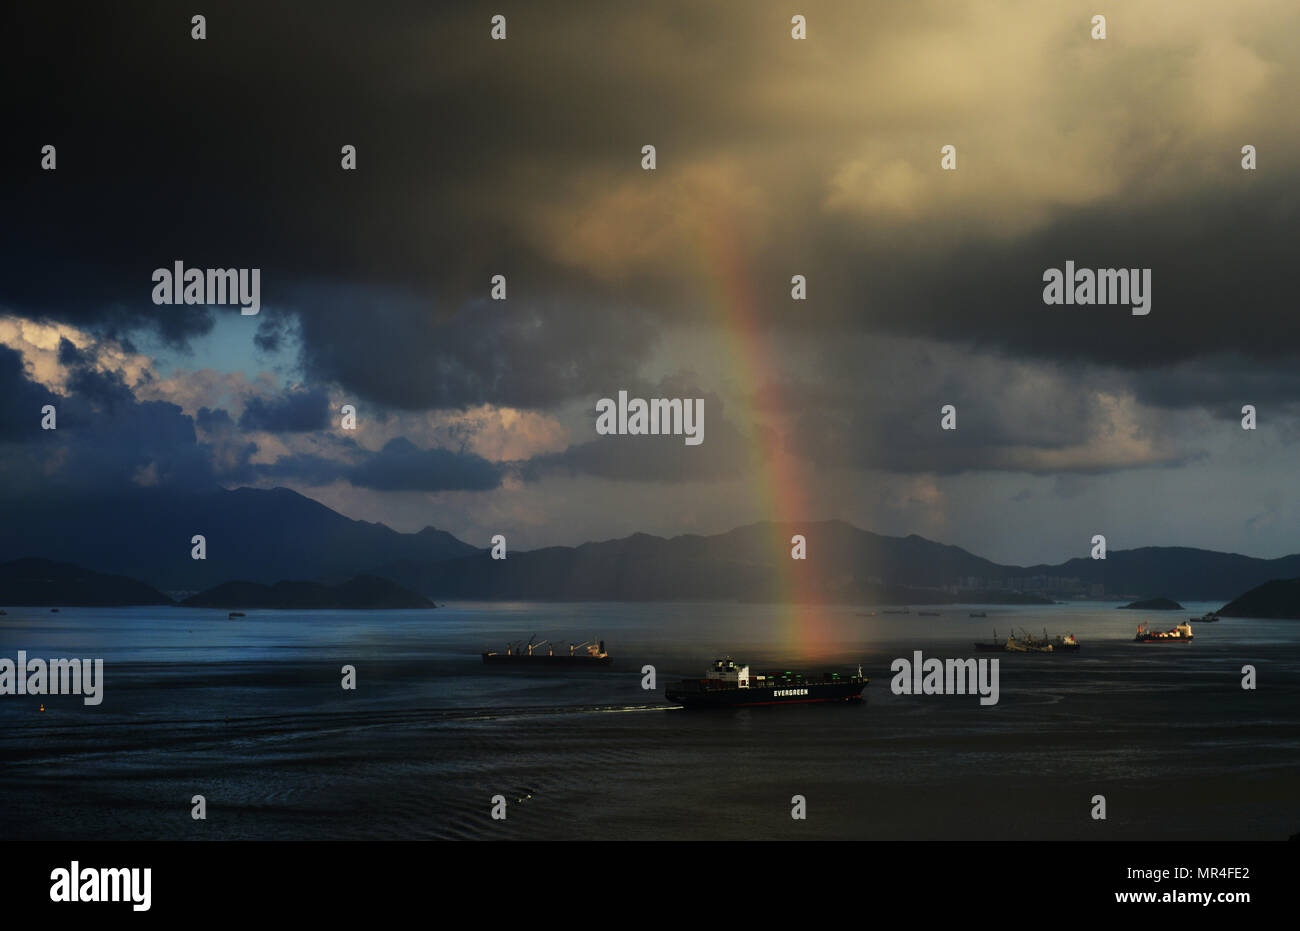 A rainbow over the East Lamma channel in Hong Kong. - Stock Image